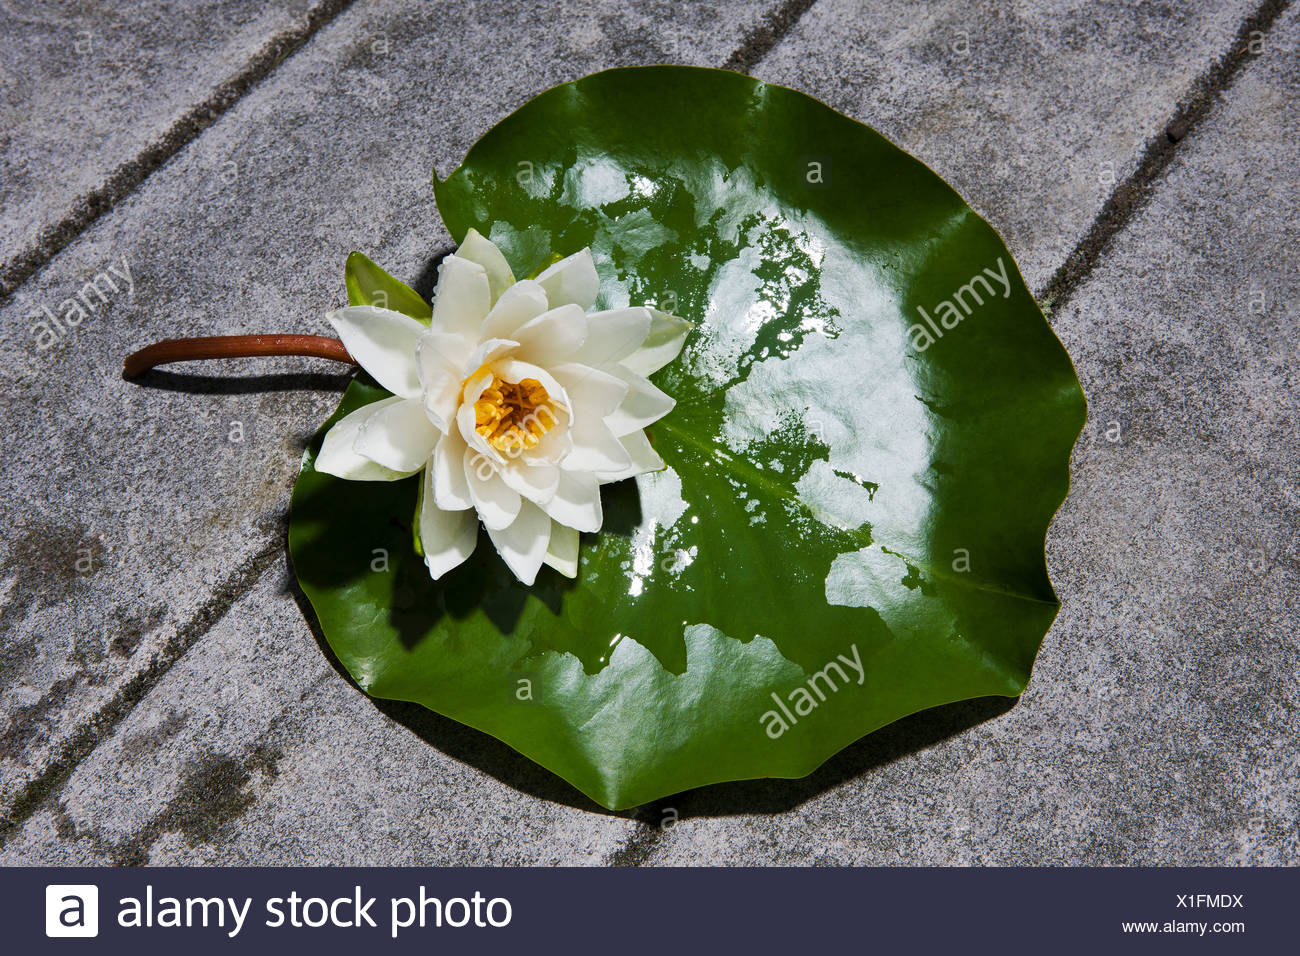 Lily pad flower stock photos lily pad flower stock images alamy water lily flower on lily pad stock image izmirmasajfo Images